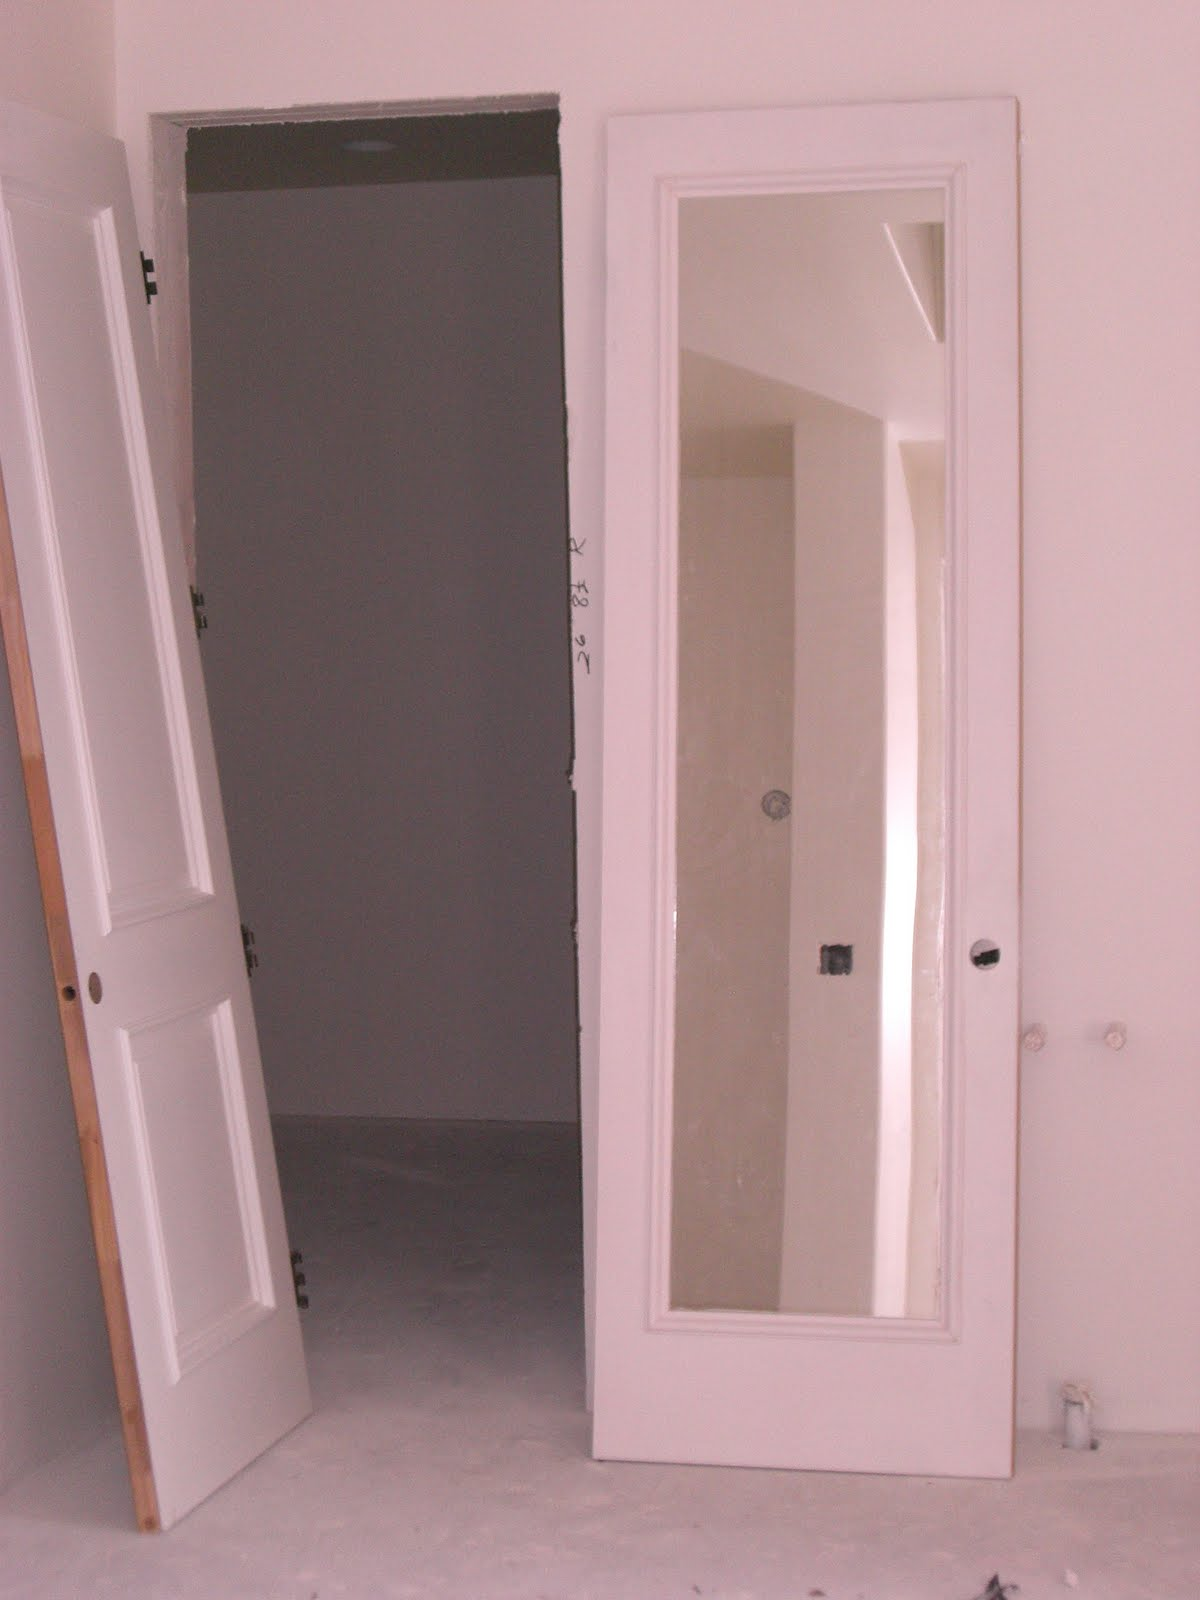 Mirrored Interior Door Shop Reliabilt 1 Lite Solid Non Bored Mirrored Glass Interior Slab Door